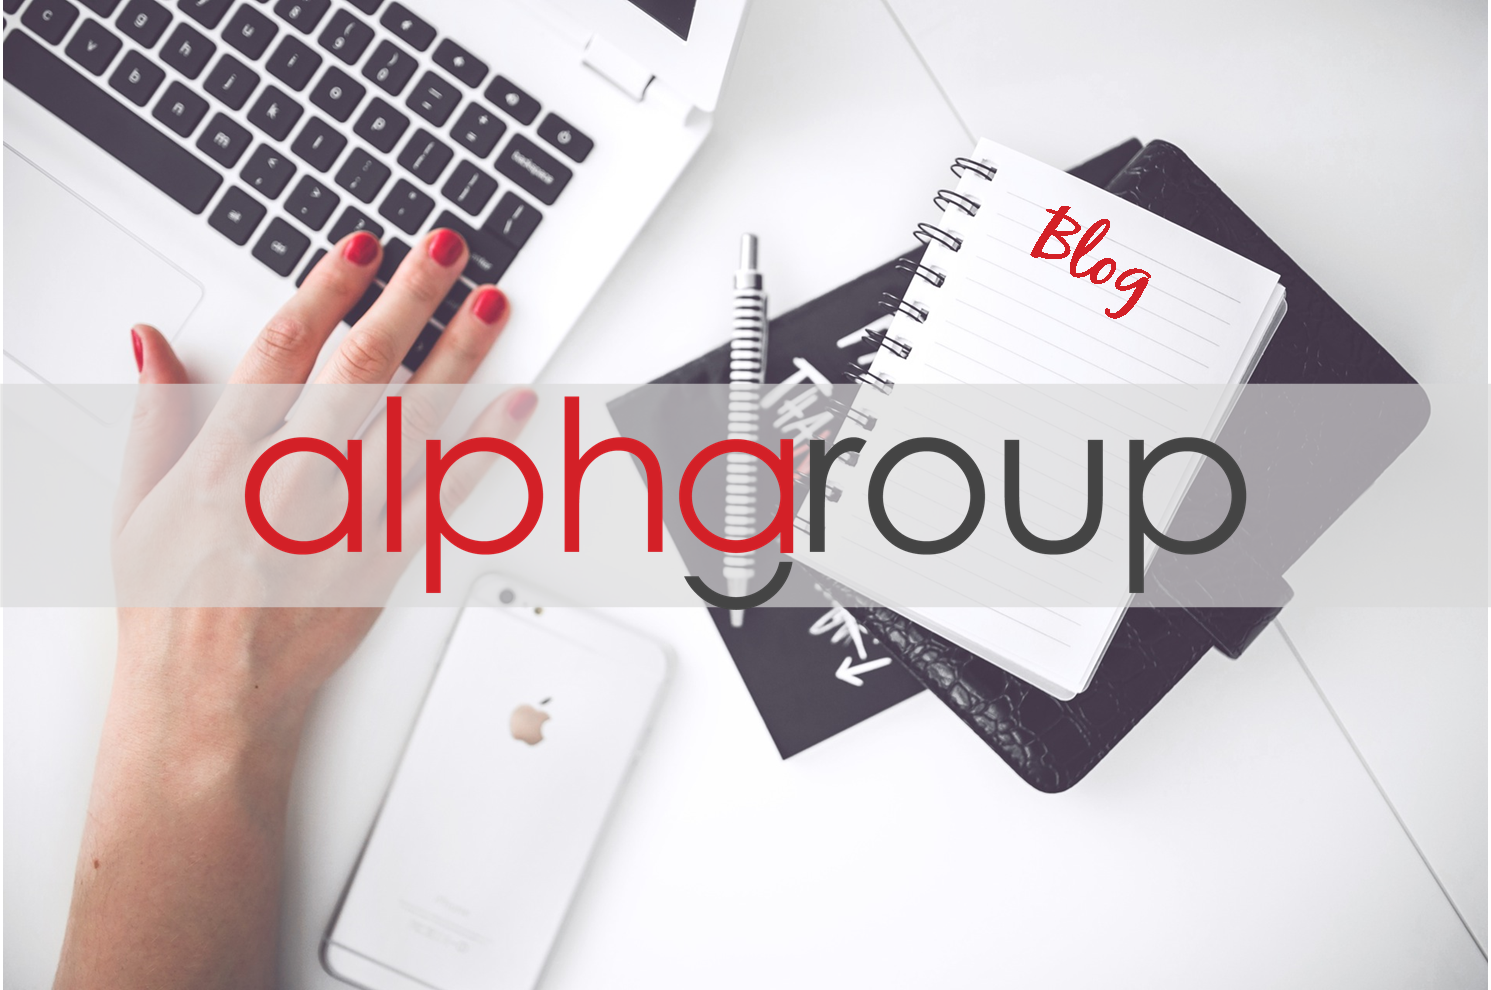 alphagroup san antonio marketing, print, promotional, social media, web design, seo firm blog